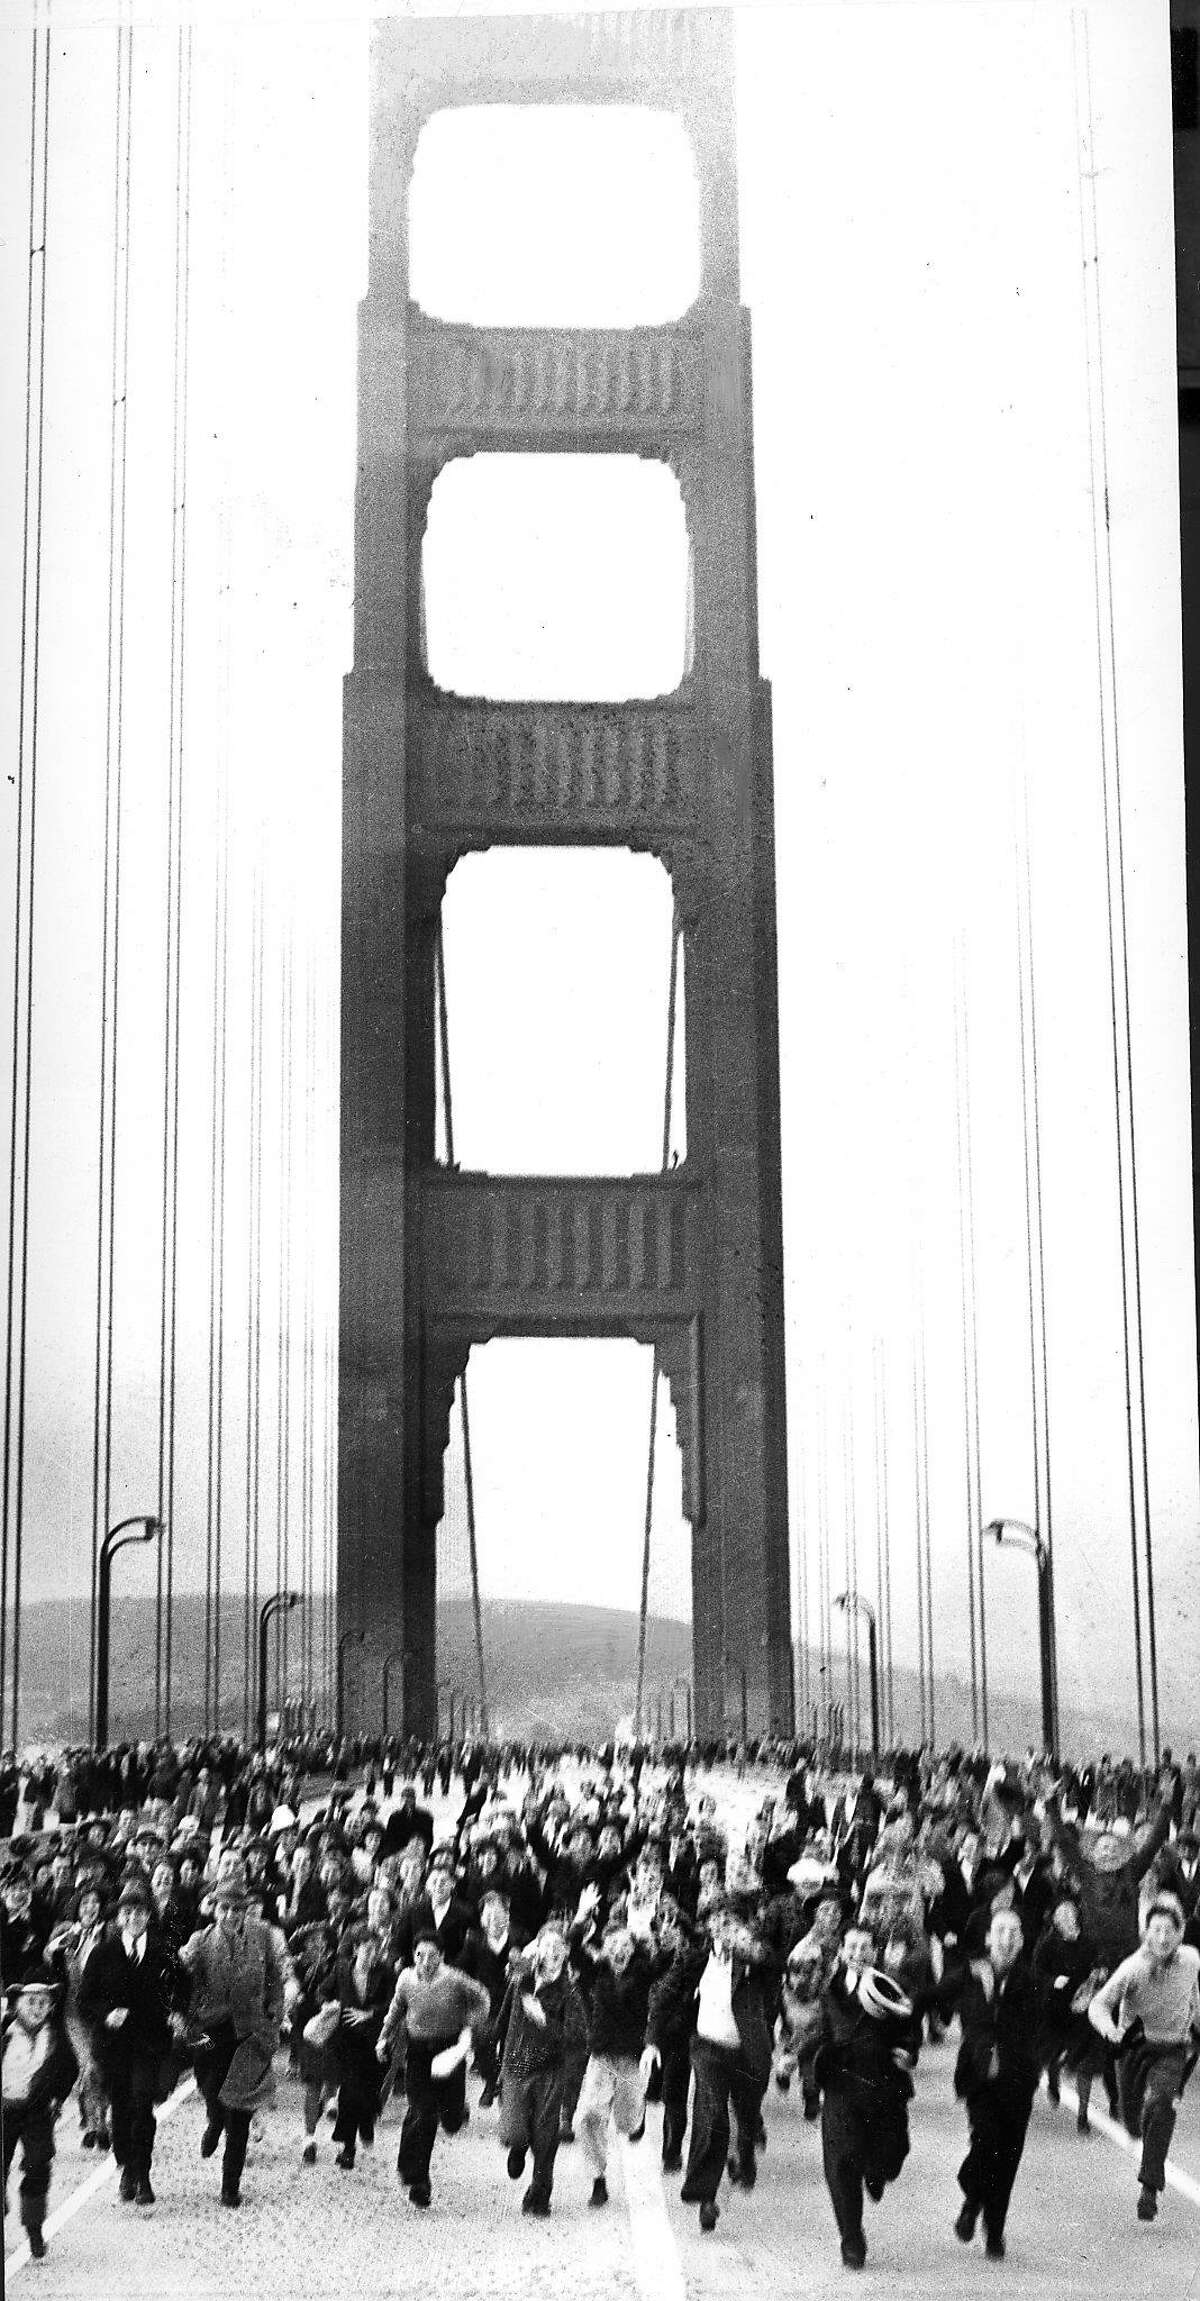 running across the Golden Gate Bridge on opening day, May 27, 1937